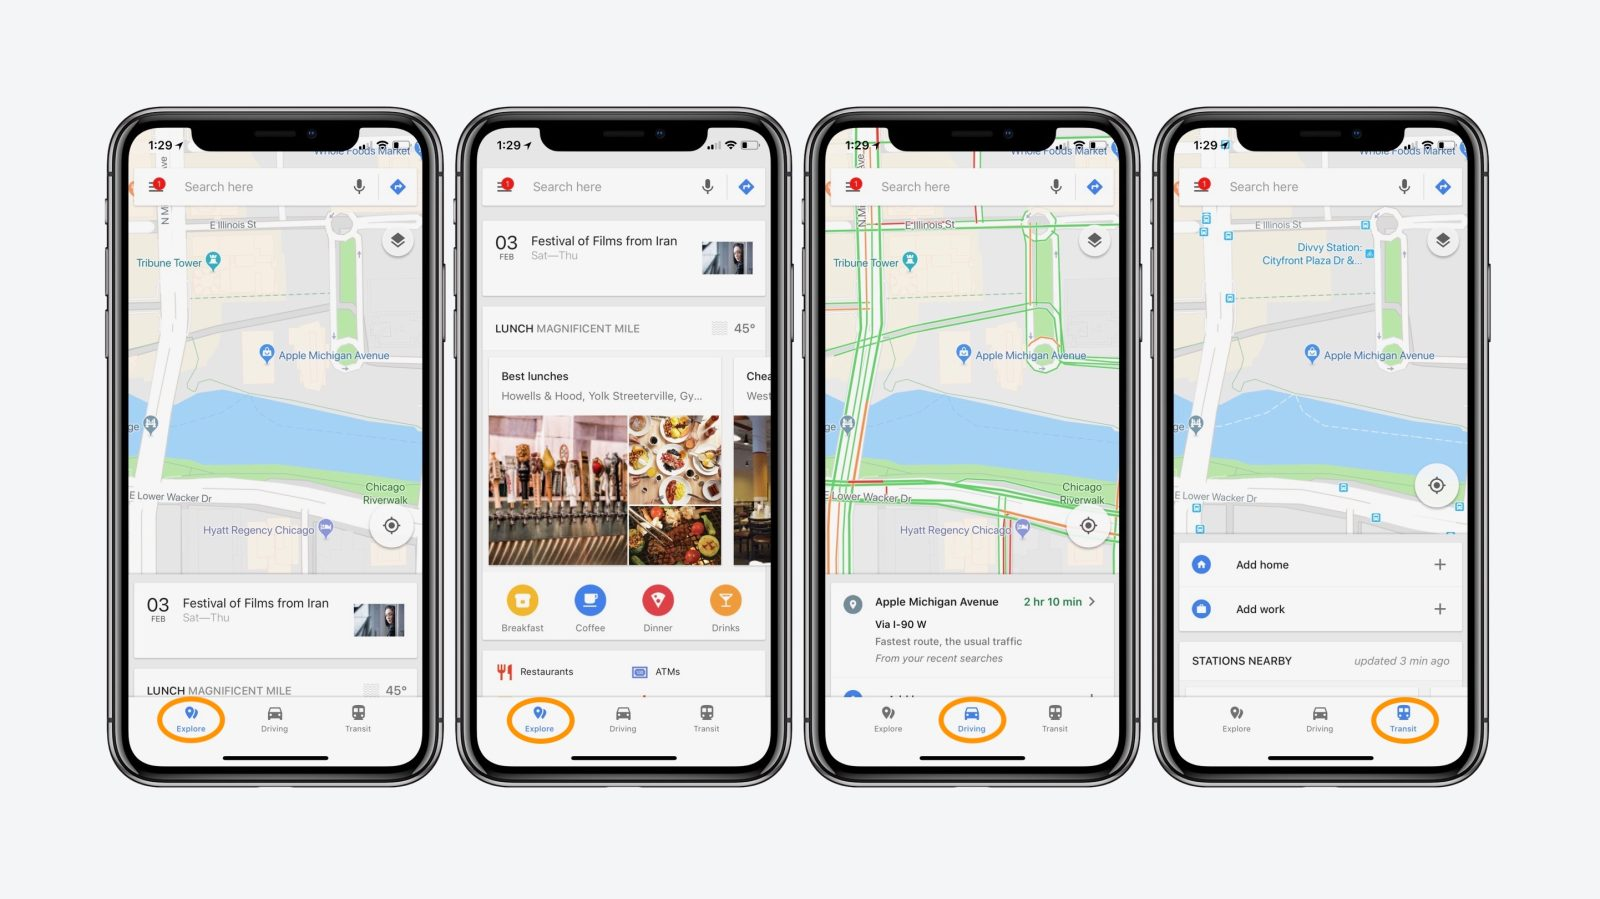 Google Maps iOS update adds new bottom bar with real-time transit